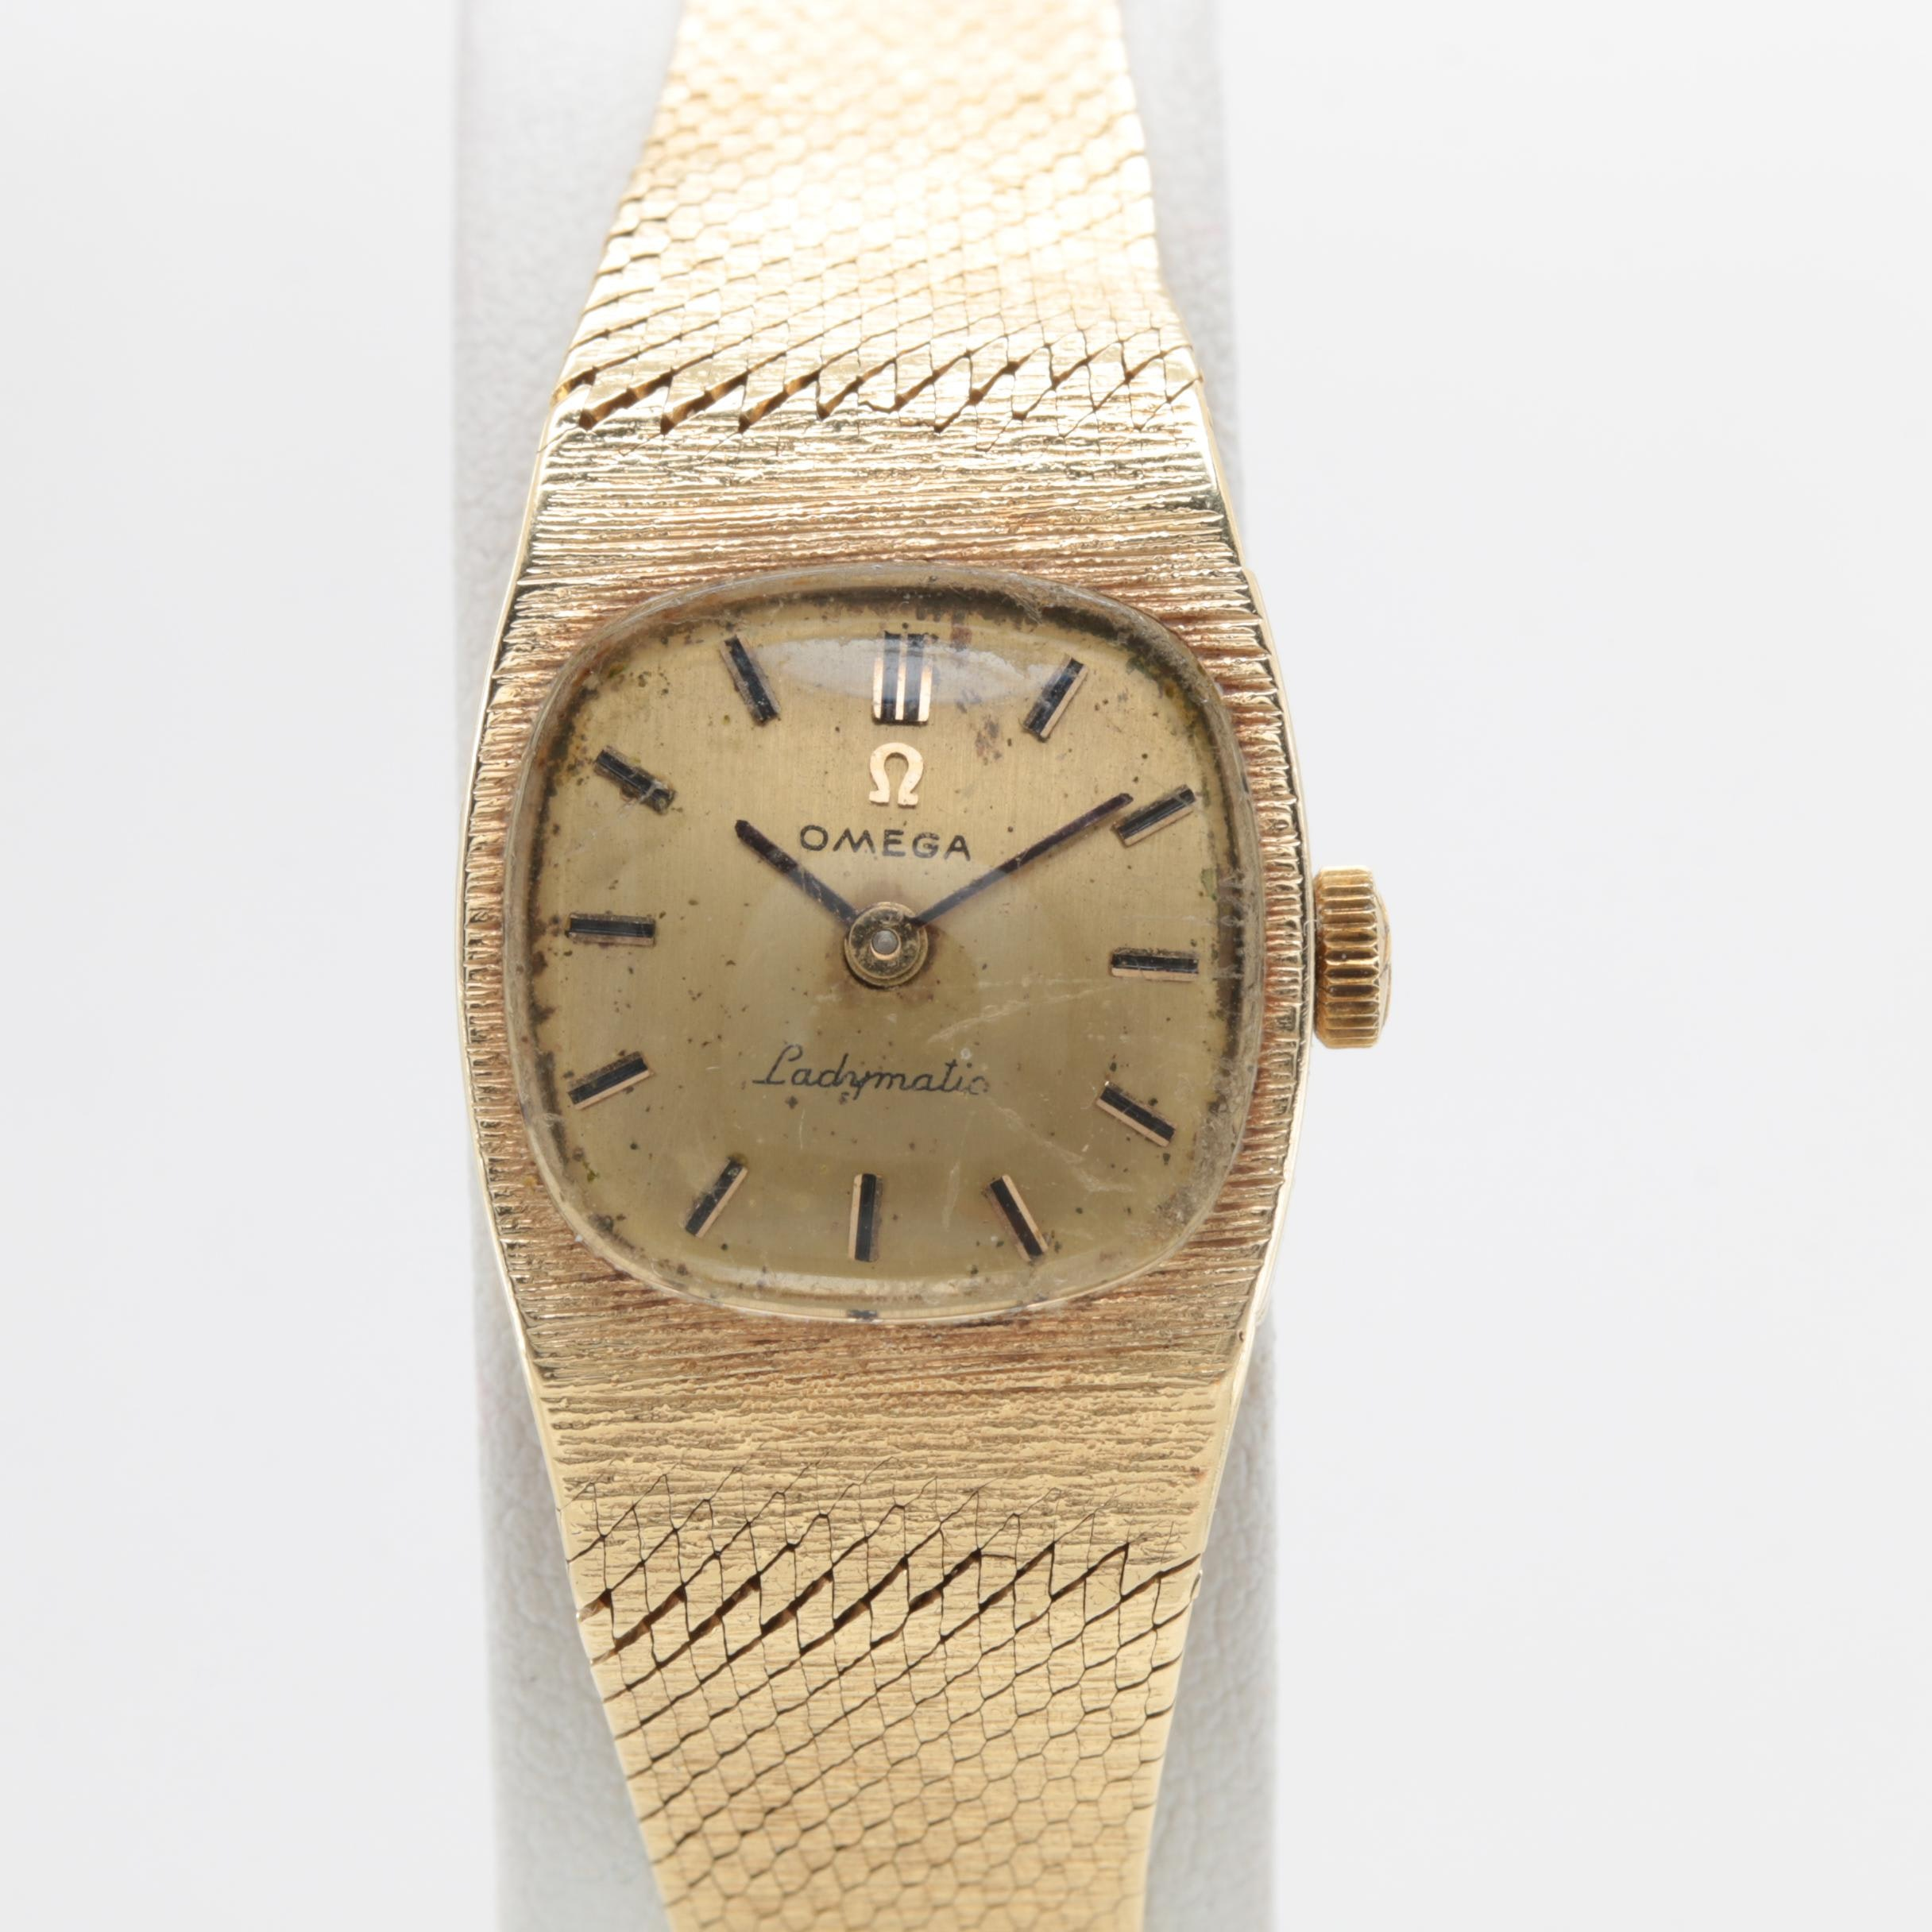 "Omega ""Ladymatic"" 14K Yellow Gold Wristwatch"